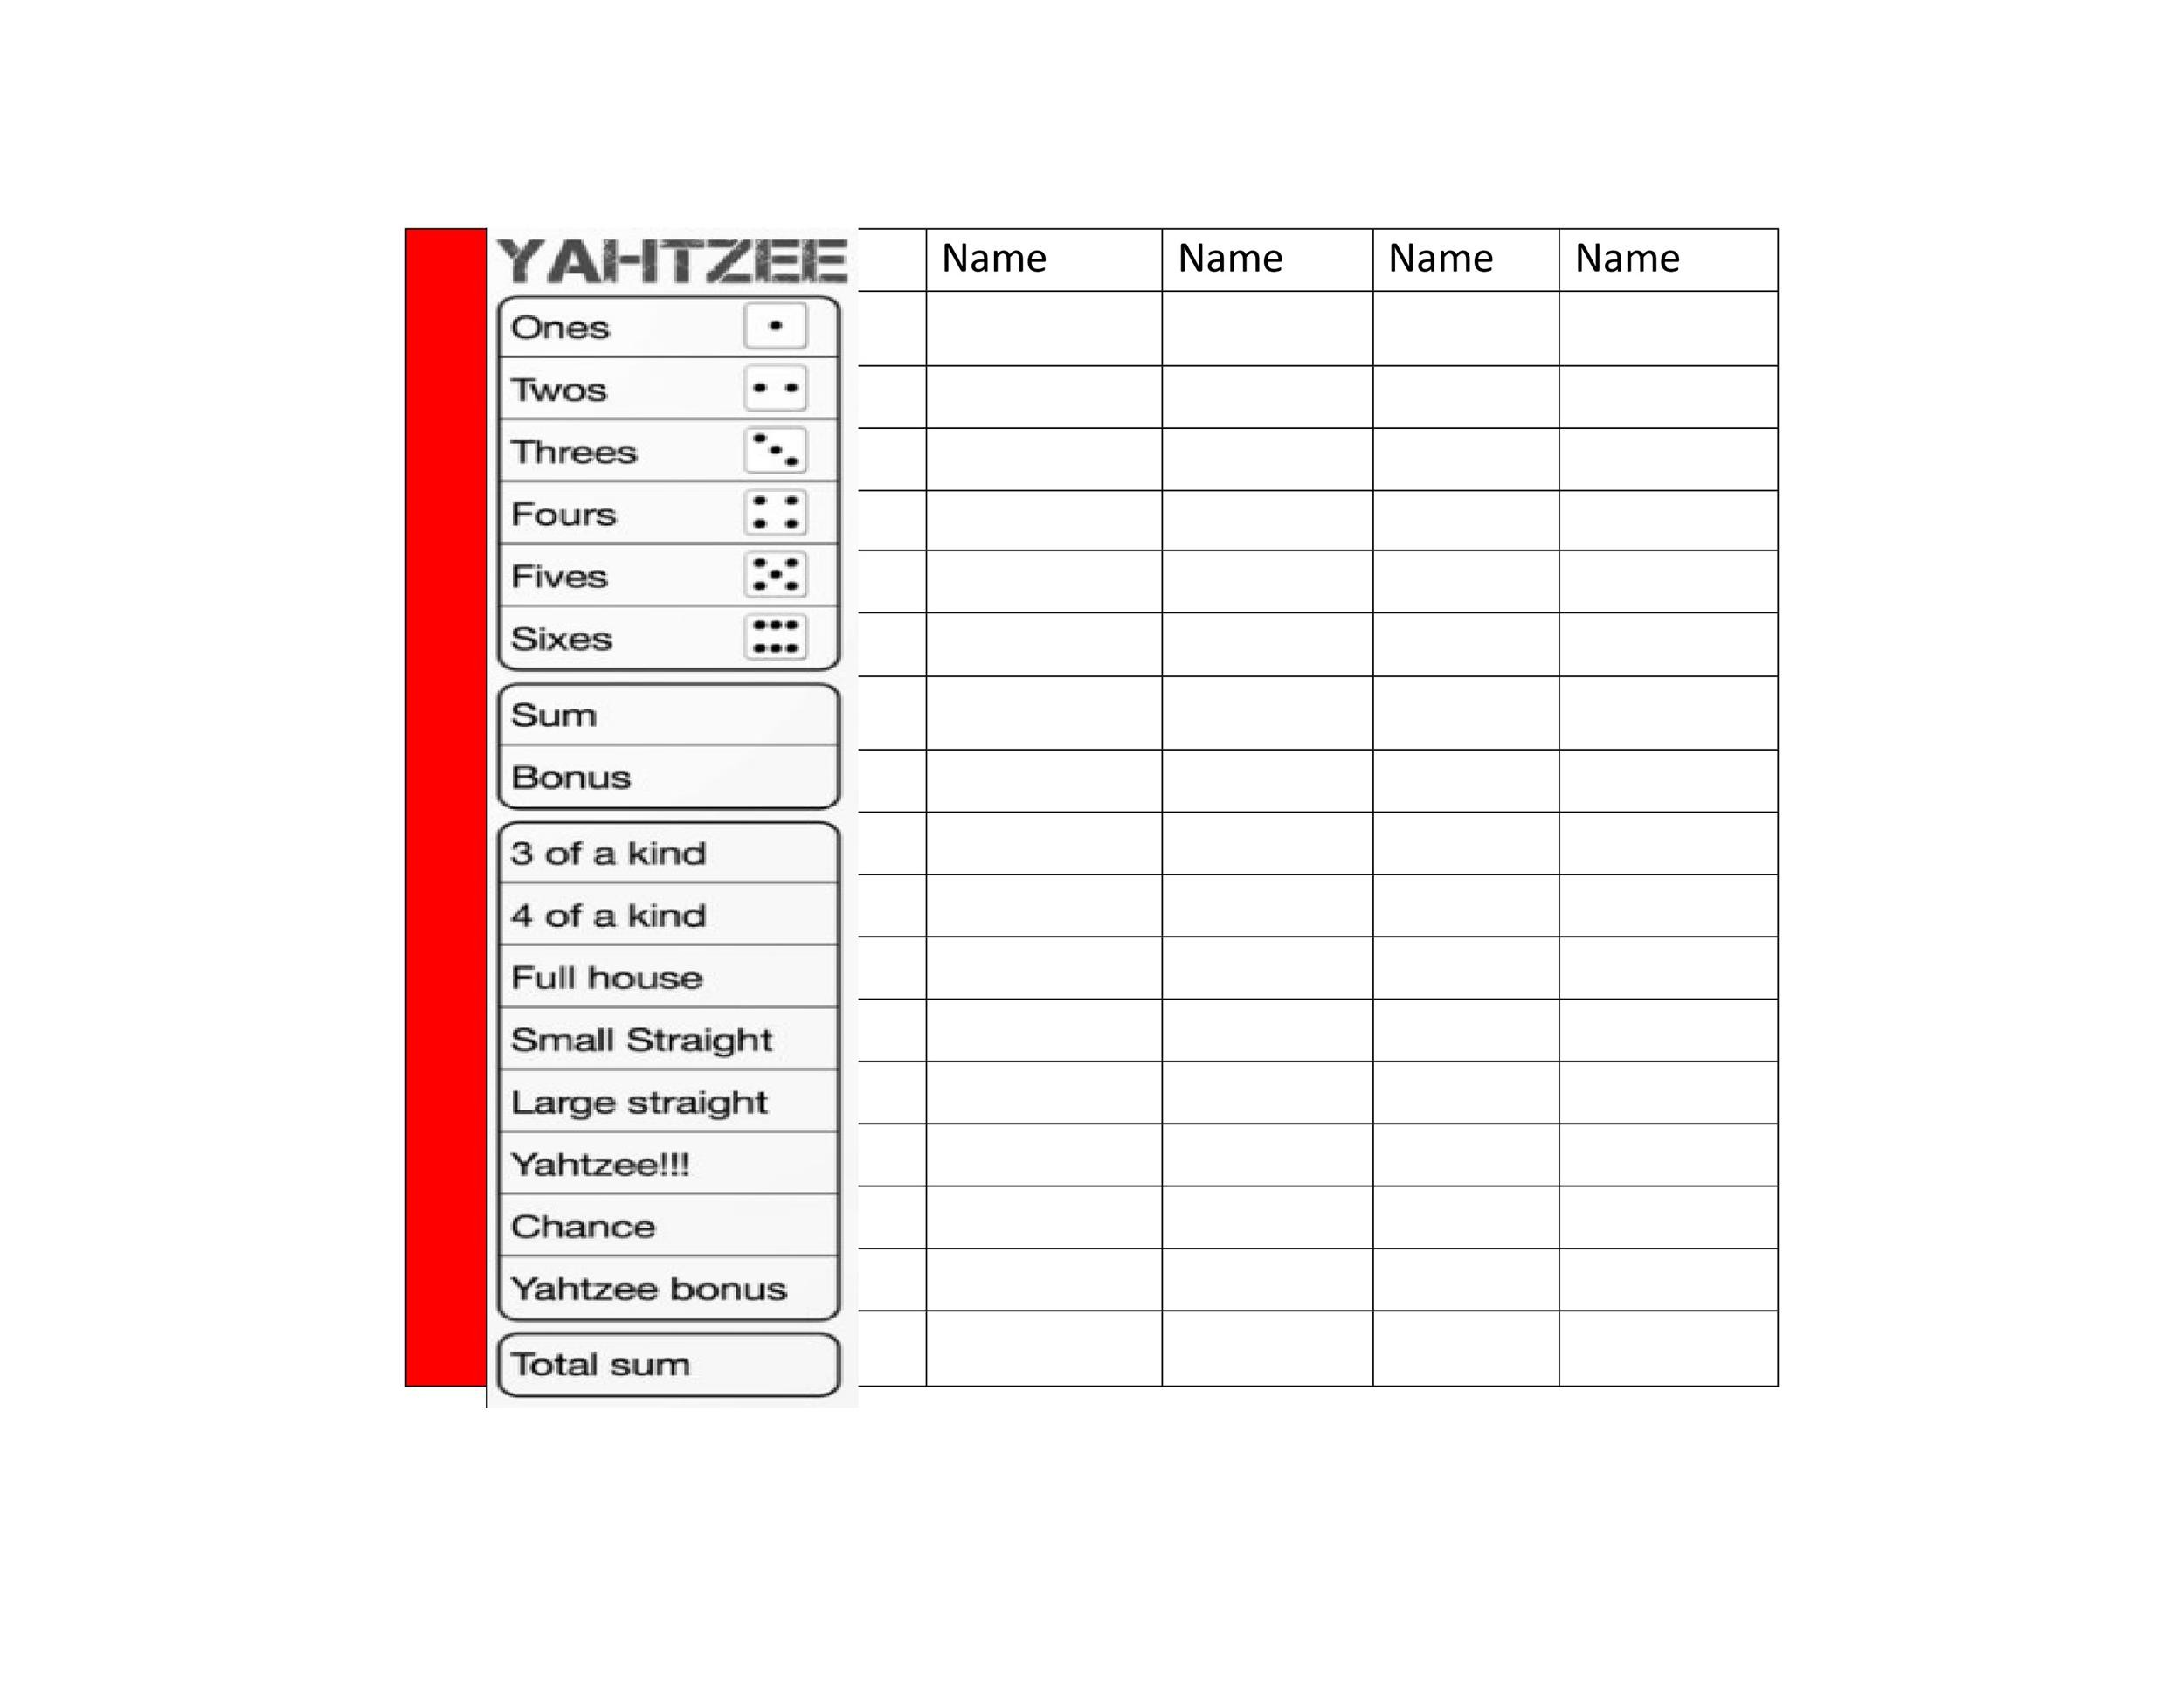 photograph regarding Free Printable Yahtzee Score Cards titled 28 Printable Yahtzee Rating Sheets Playing cards (101% Absolutely free) ᐅ